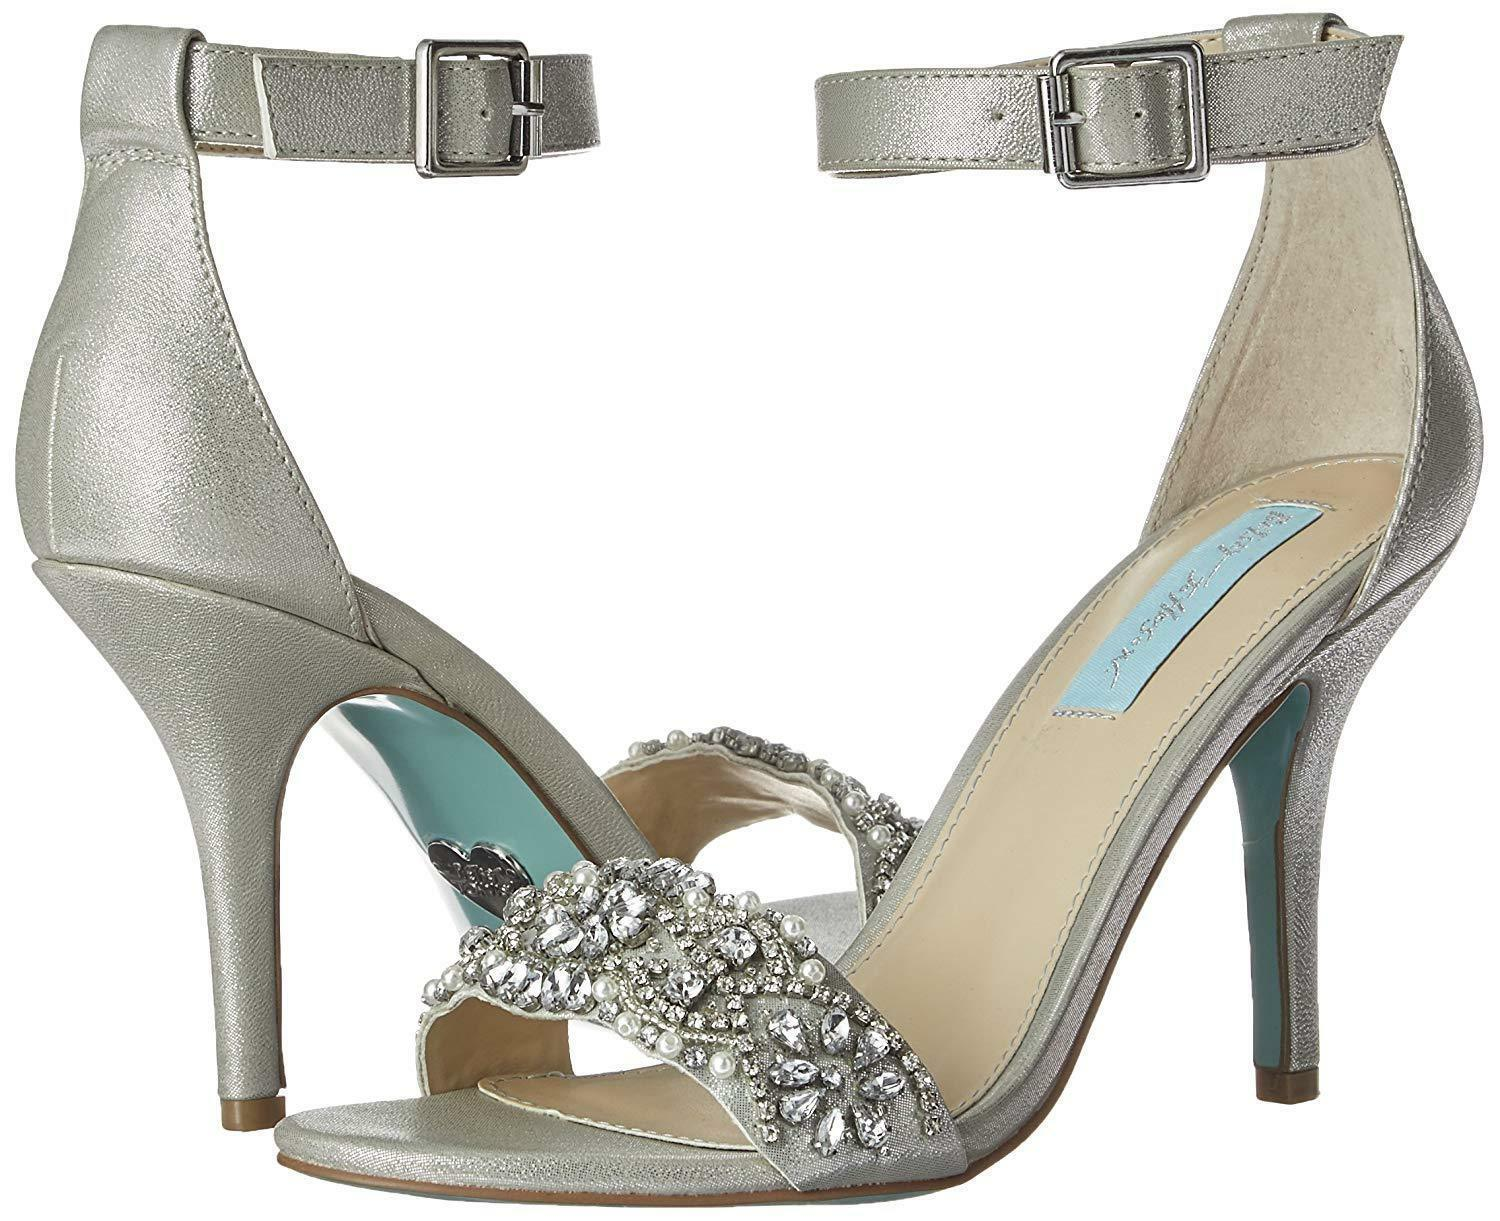 Blue by Betsey Johnson Women's Sb-Gina Dress Sandal image 7